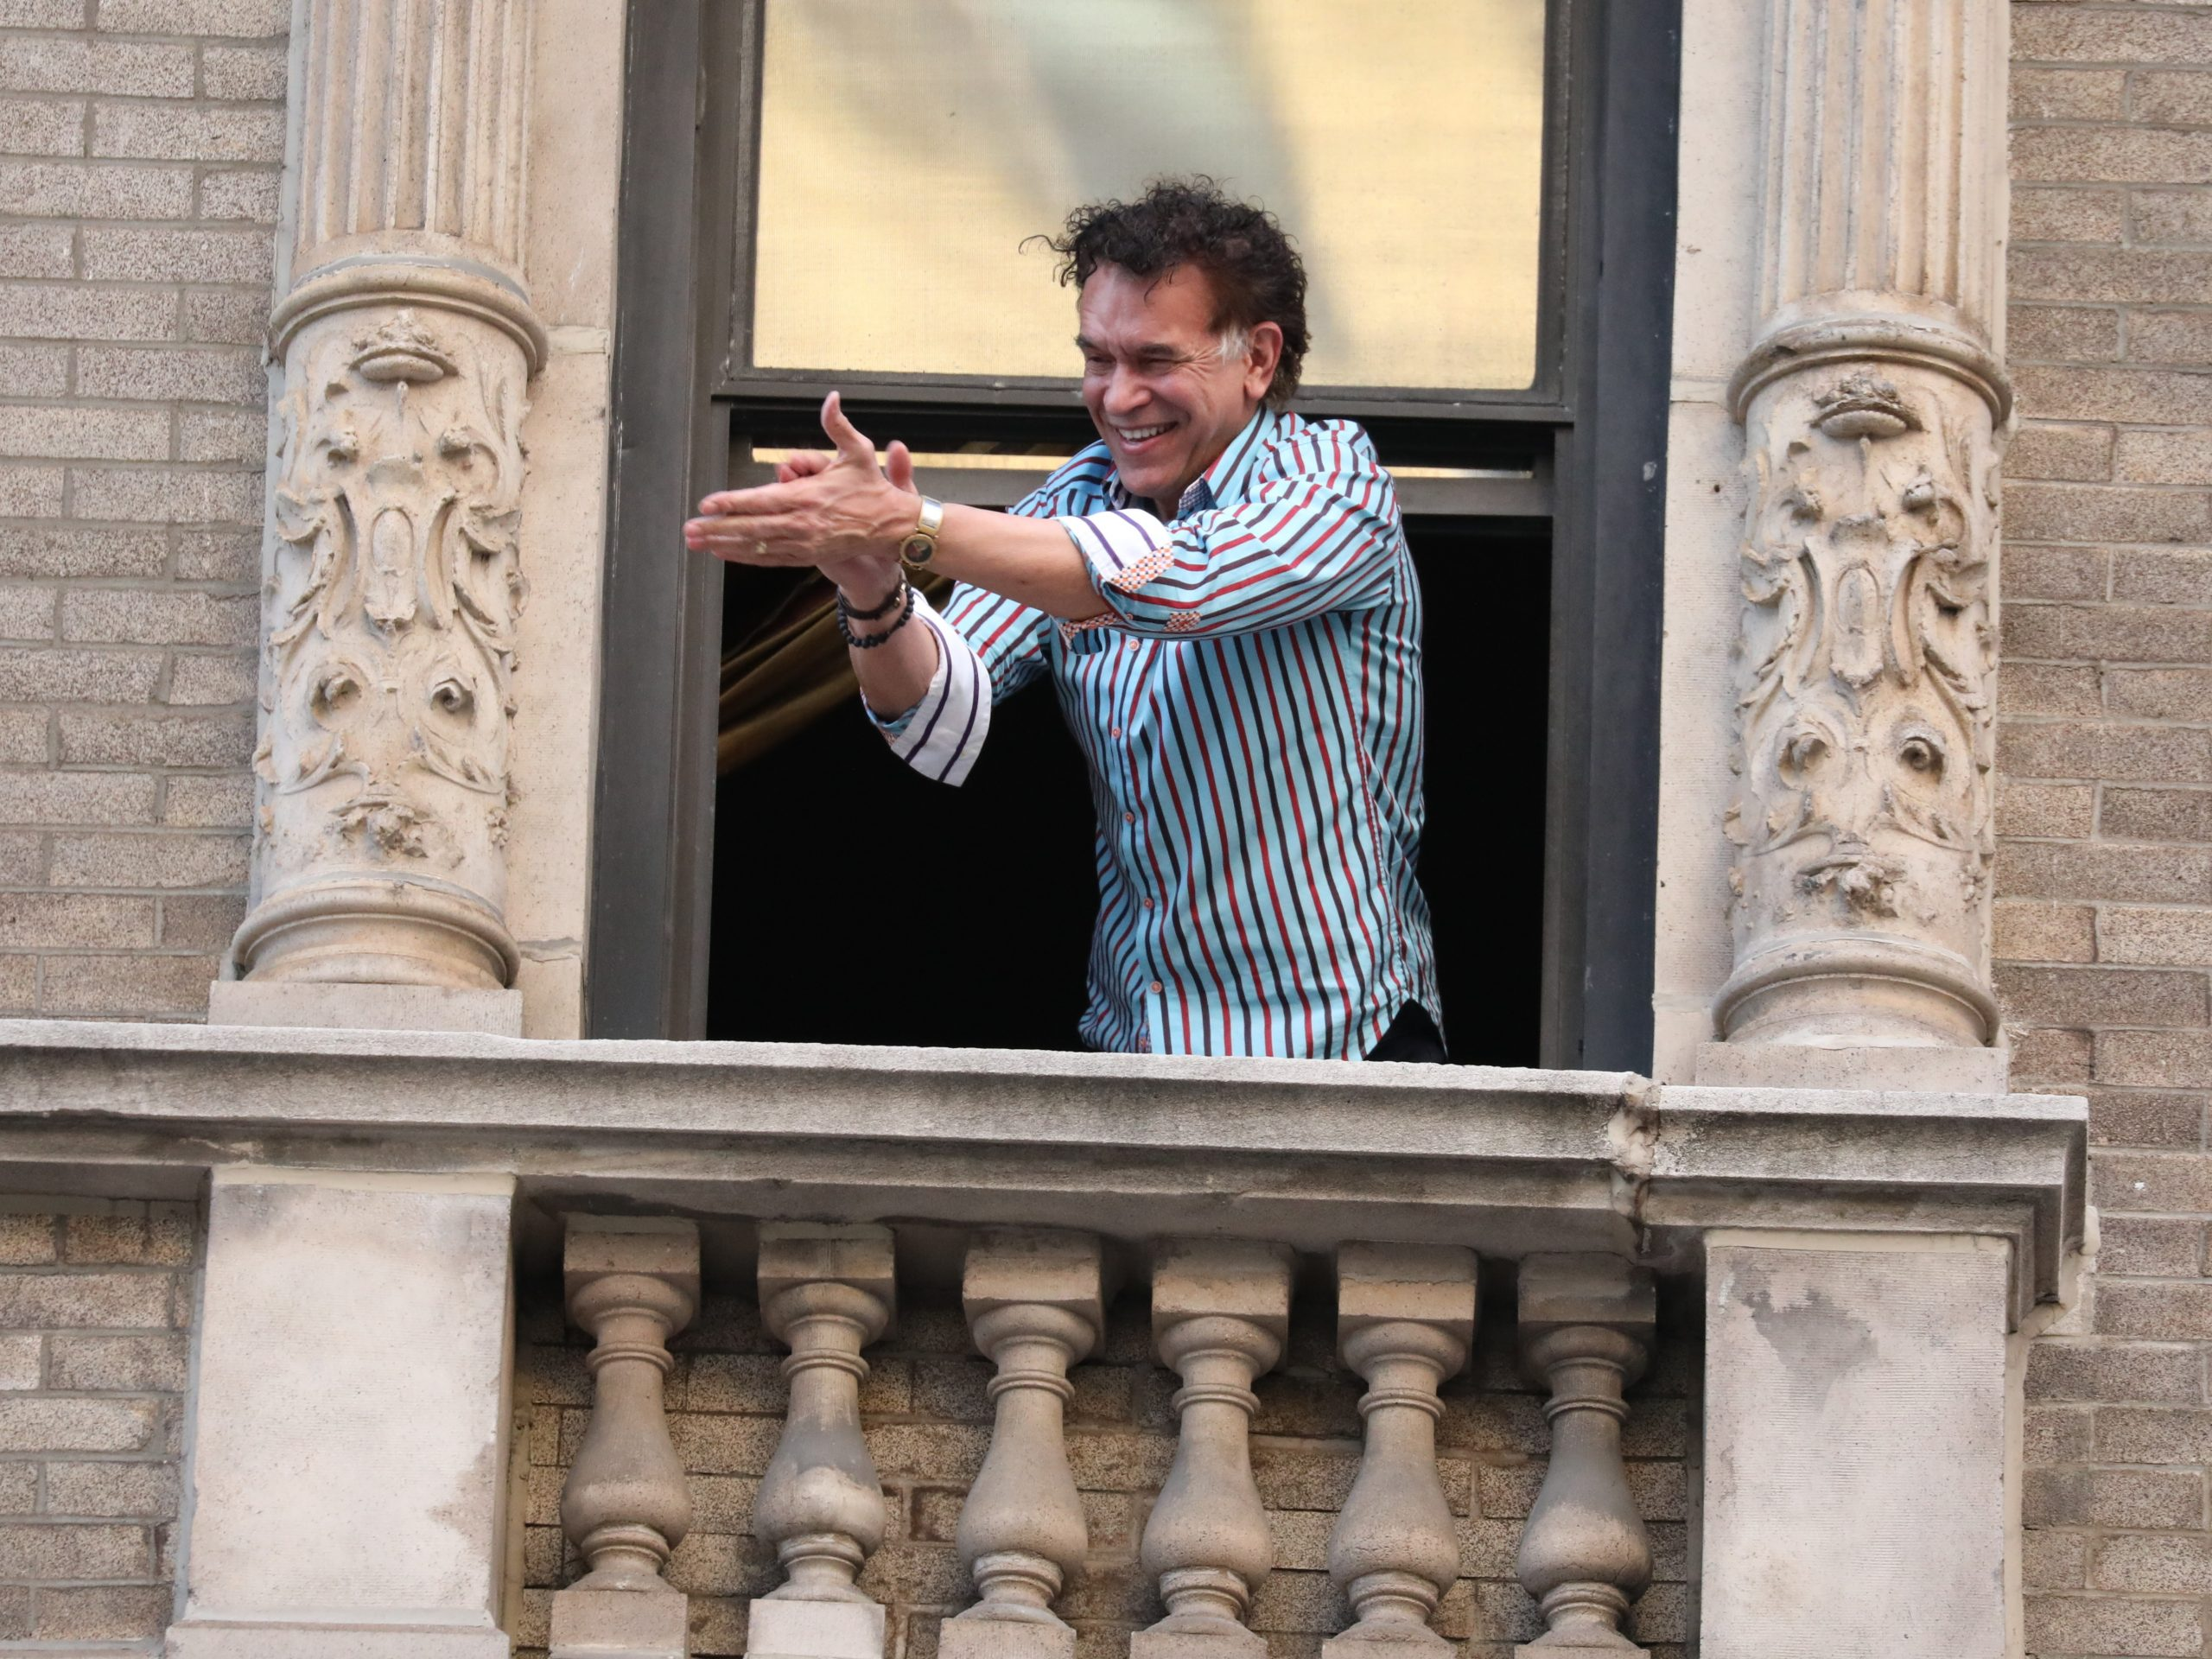 """Broadway star Brian Stokes Mitchell — who has recovered from the coronavirus — sings from his window to show appreciation for New York City's healthcare workers and first responders. """"People need this, too,"""" he says. """"They need that connection. They need to be reconnected to themselves, to their own center, to each other, you know, to feel that we're all in this together."""""""